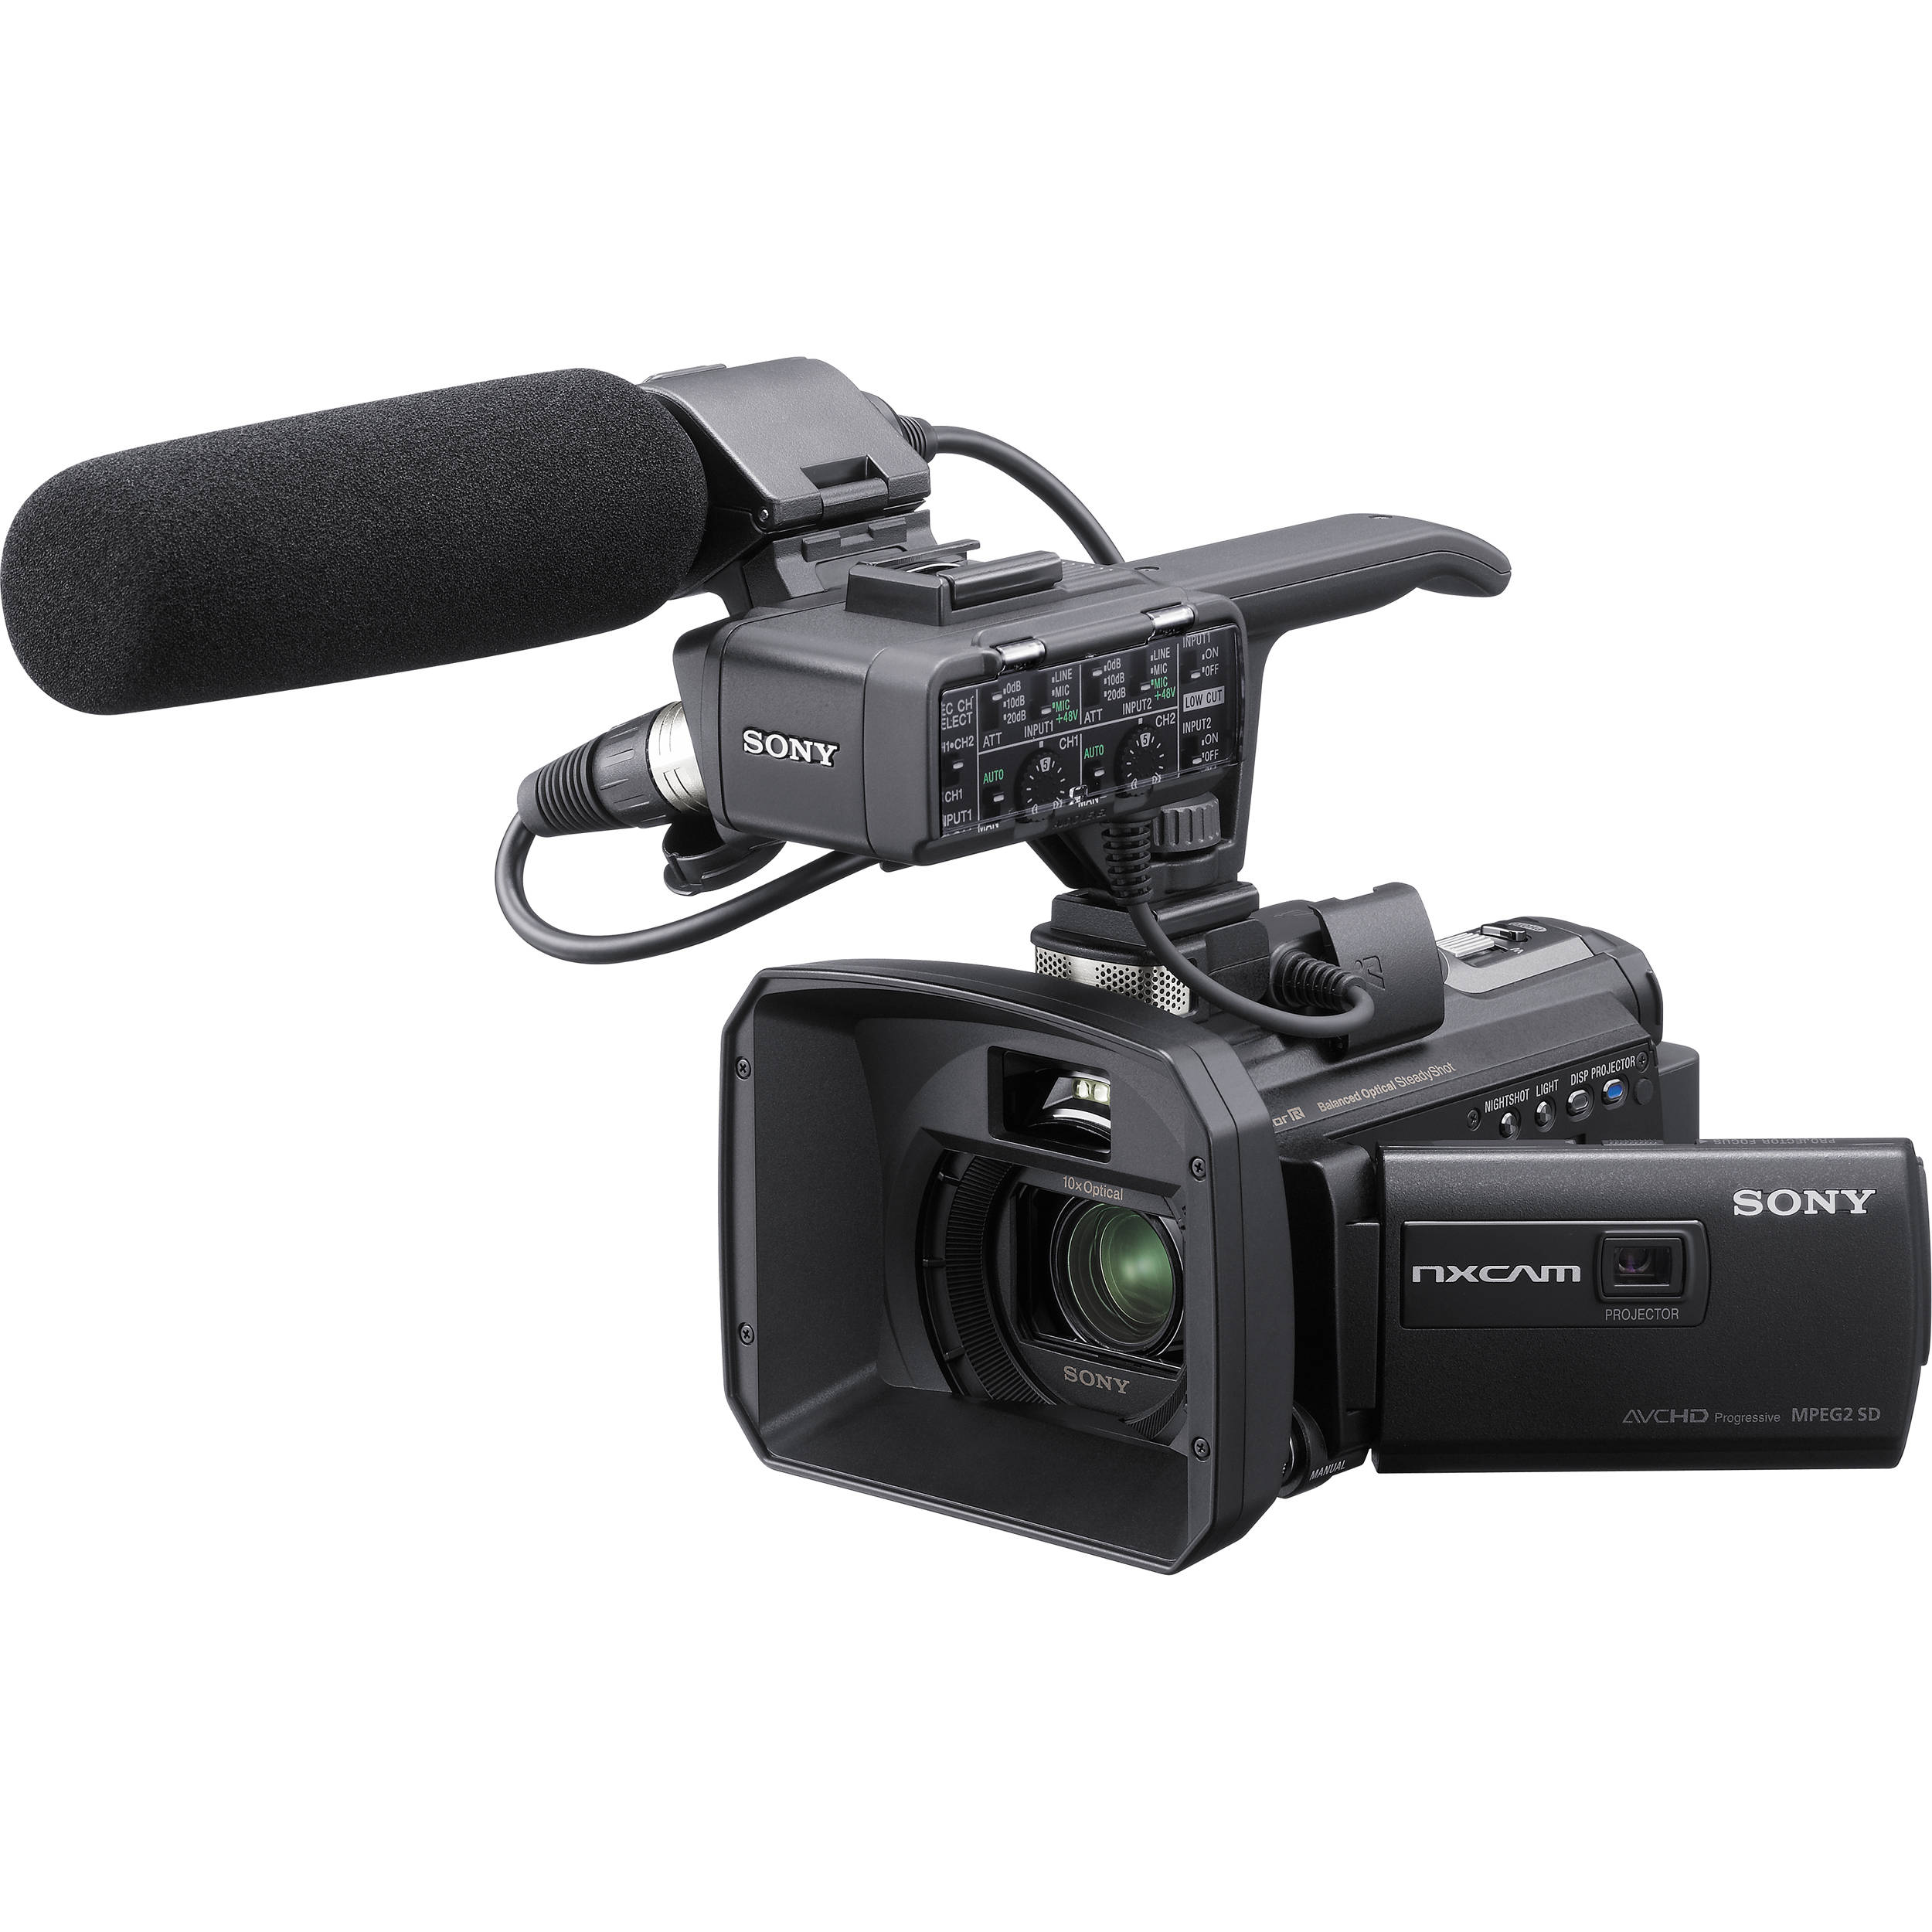 Sony 96gb hxr nx30 palm size nxcam hd camcorder hxr nx30u b h for Palm projector